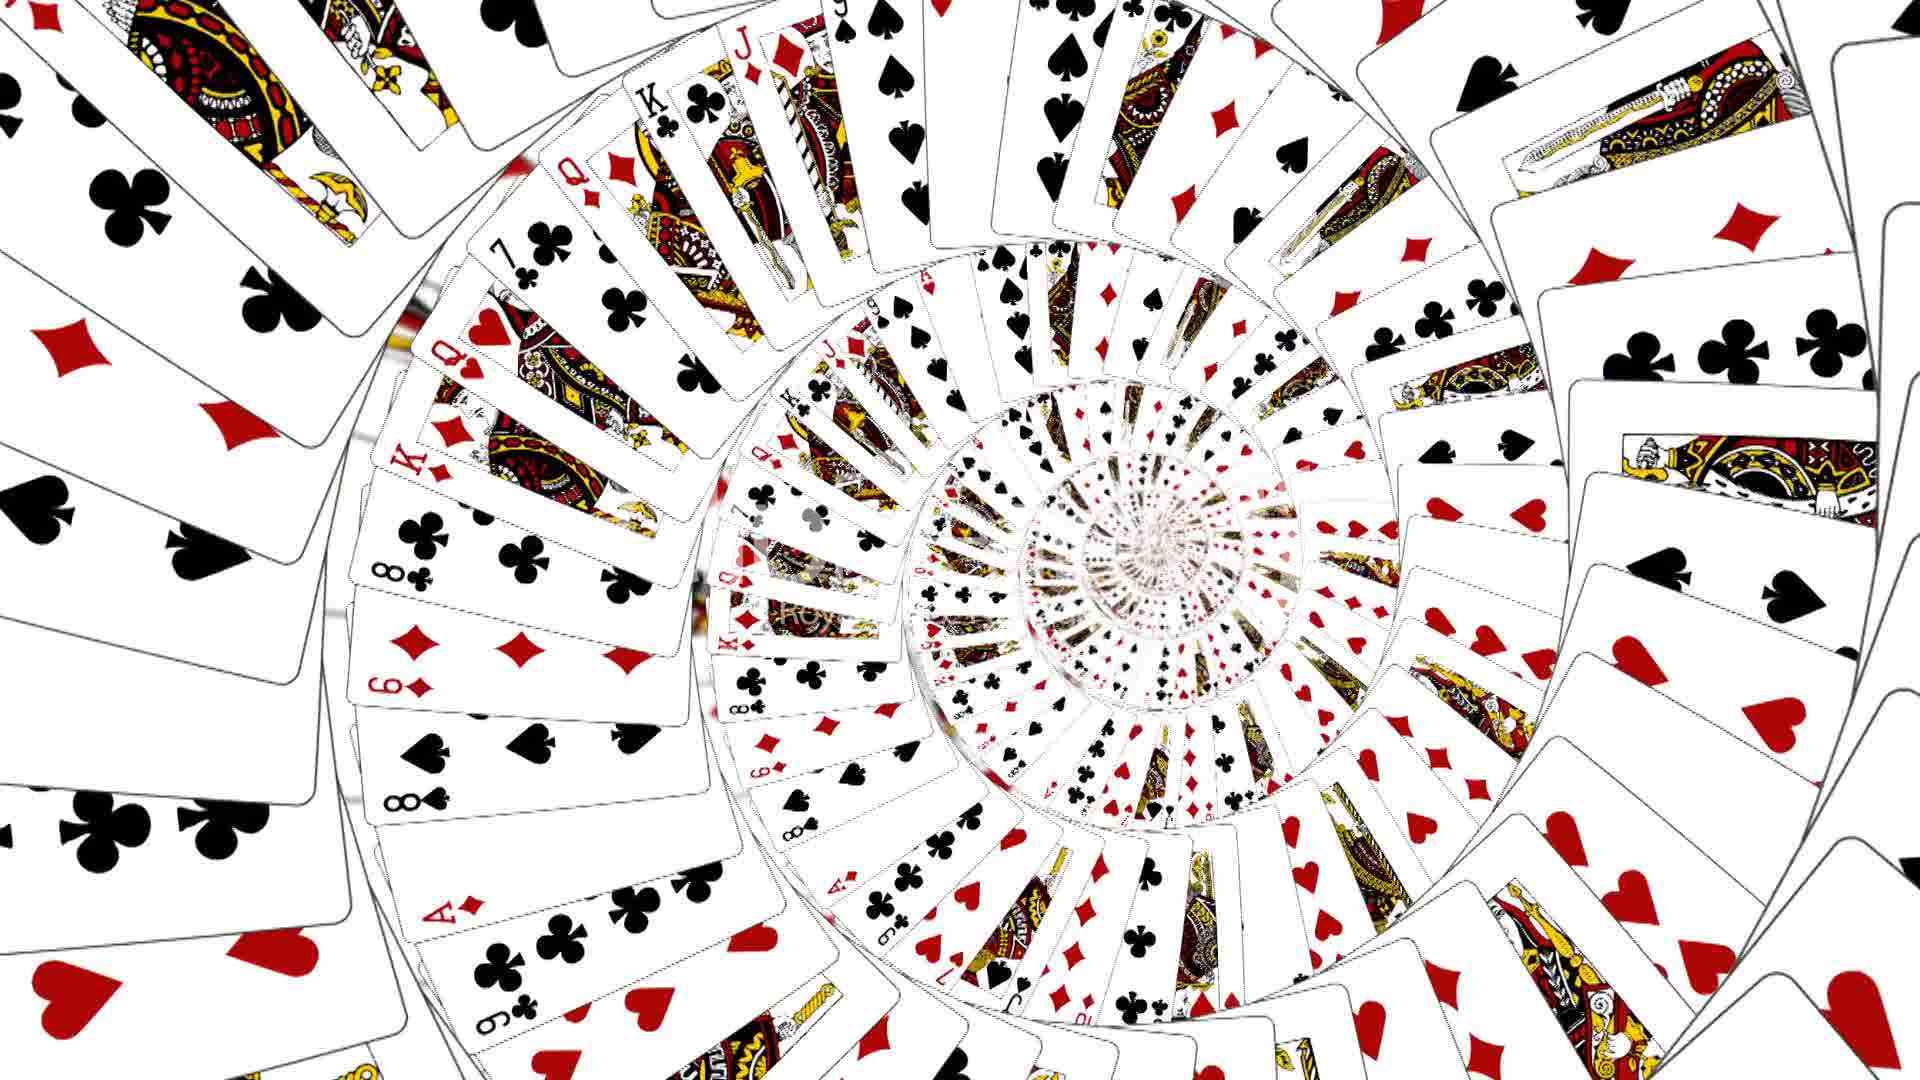 playing-cards-632294-1920x1080-hq-dsk-wallpapers